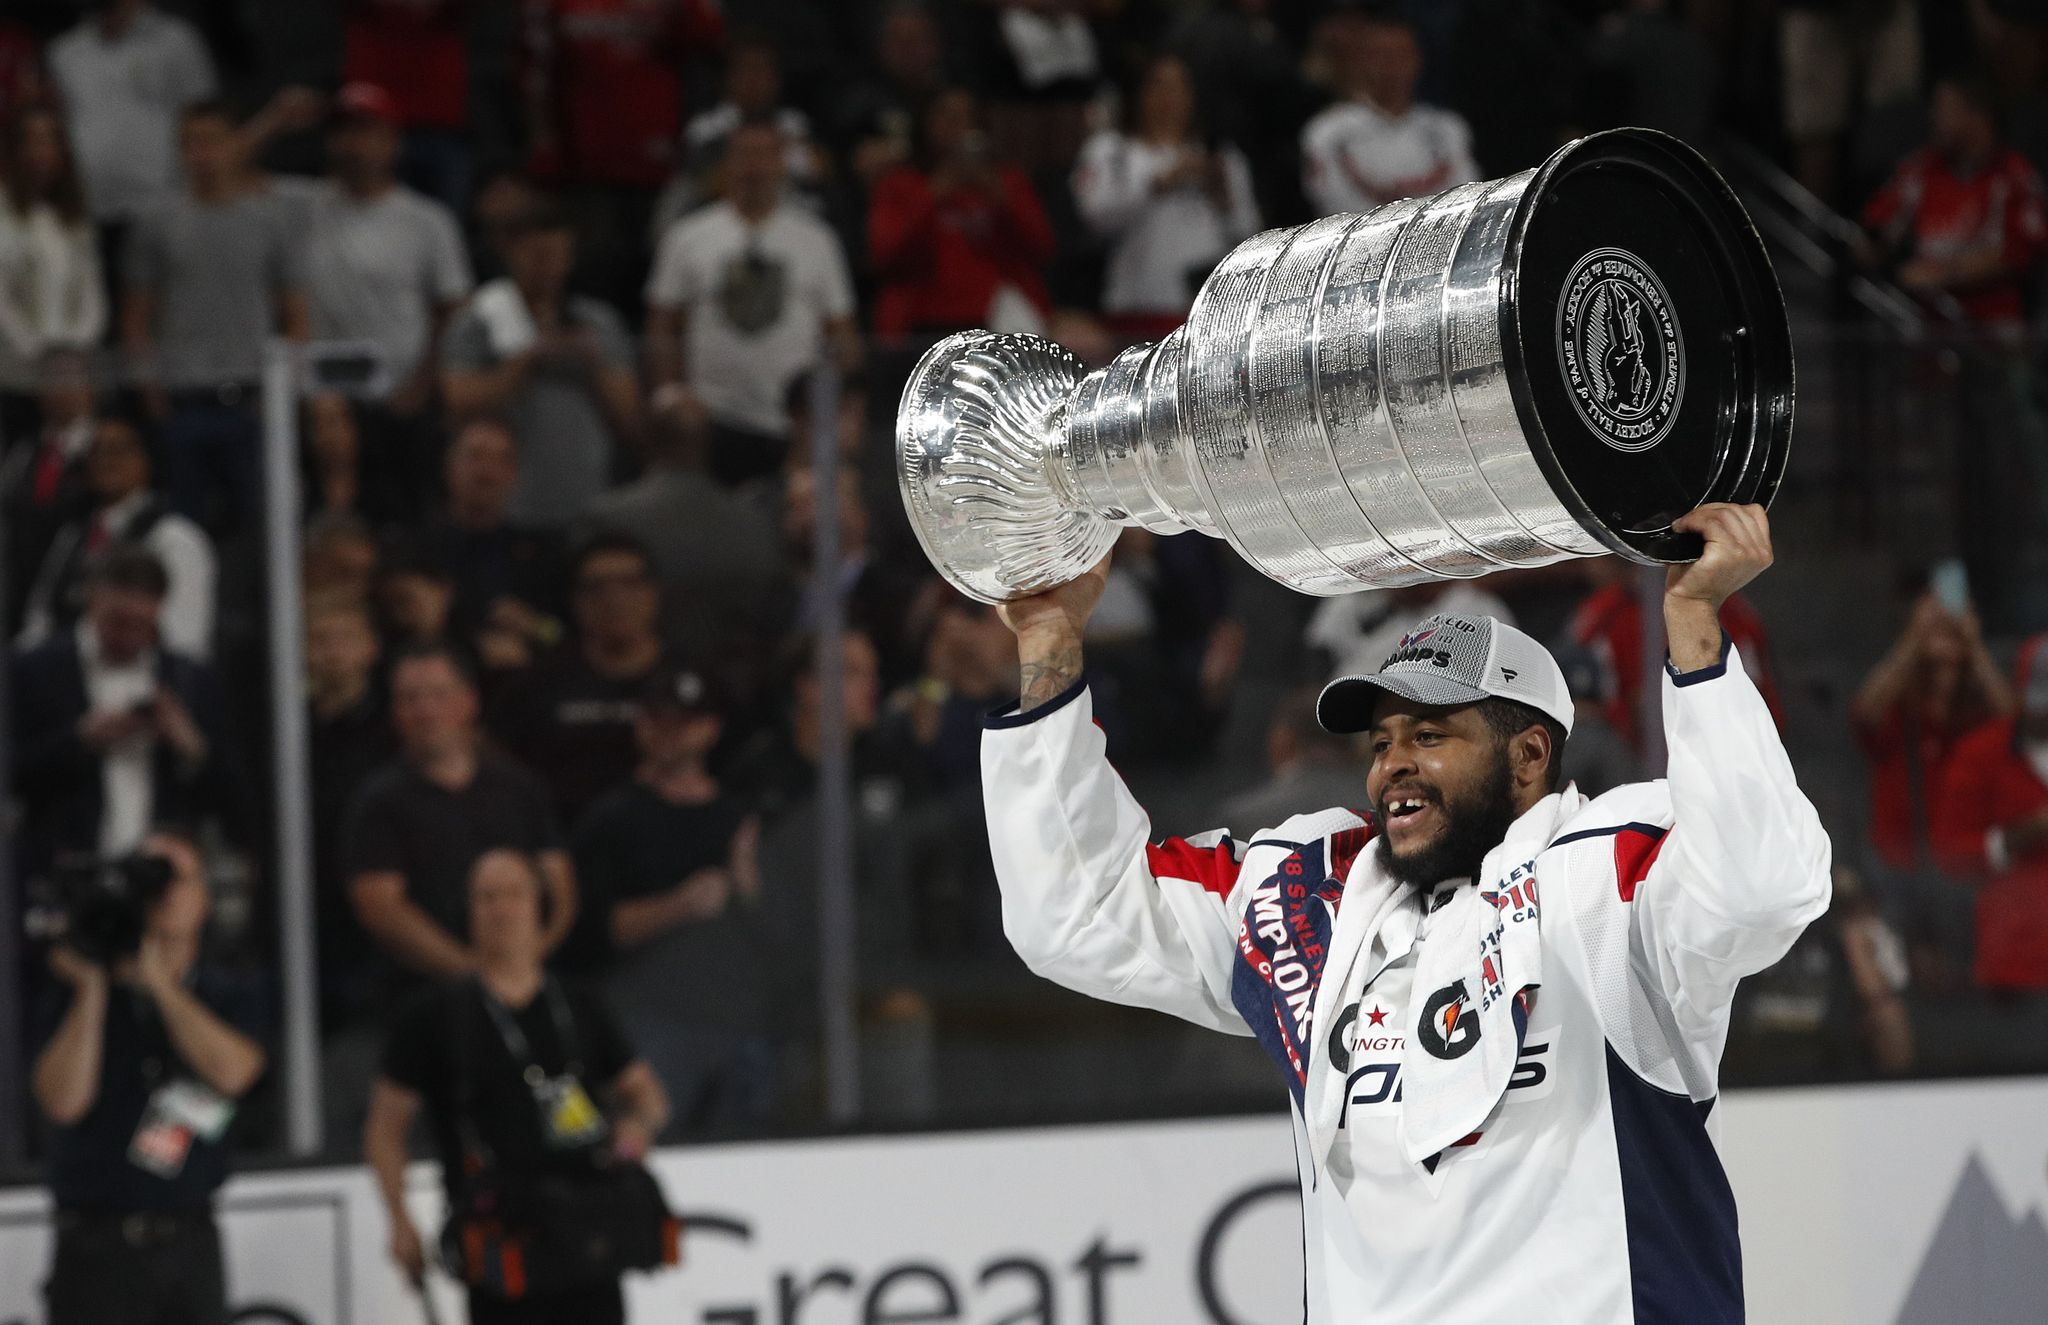 Stanley_cup_capitals_golden_knights_hockey_29103.jpg-f2aac_s2048x1325